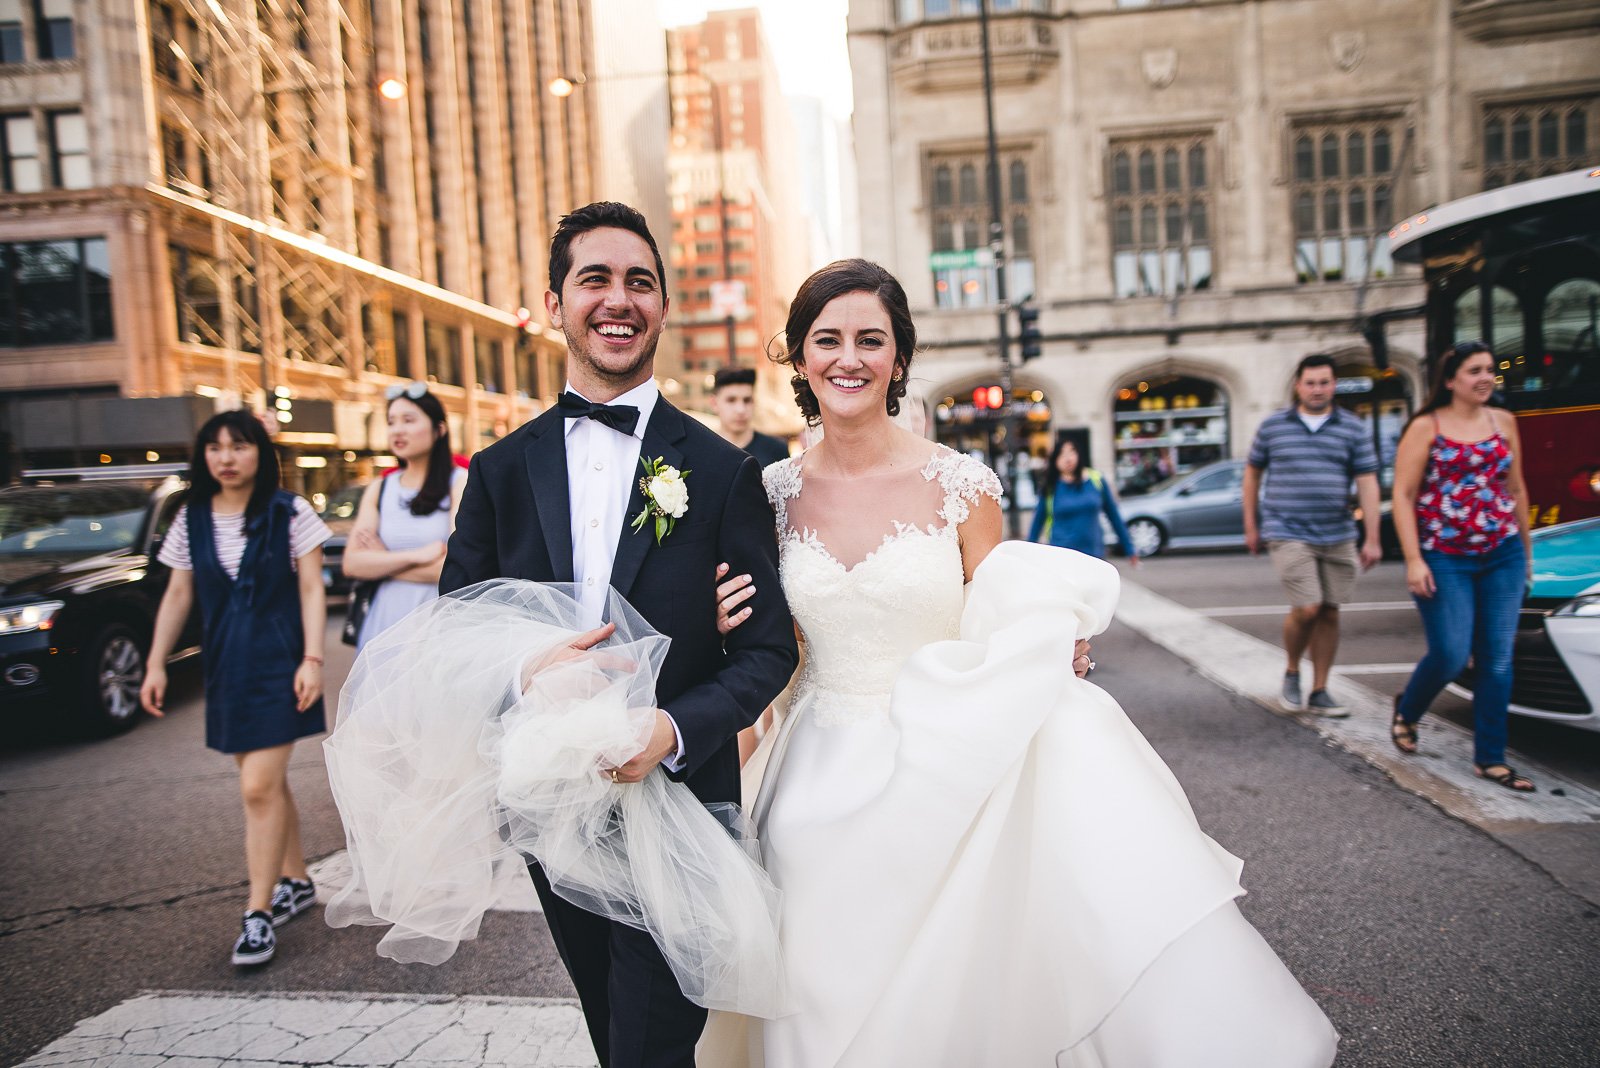 40 chicago wedding photographer best portraits during weddings review 1 - 2018 in Review // My Favorite Chicago Wedding Photography Portraits